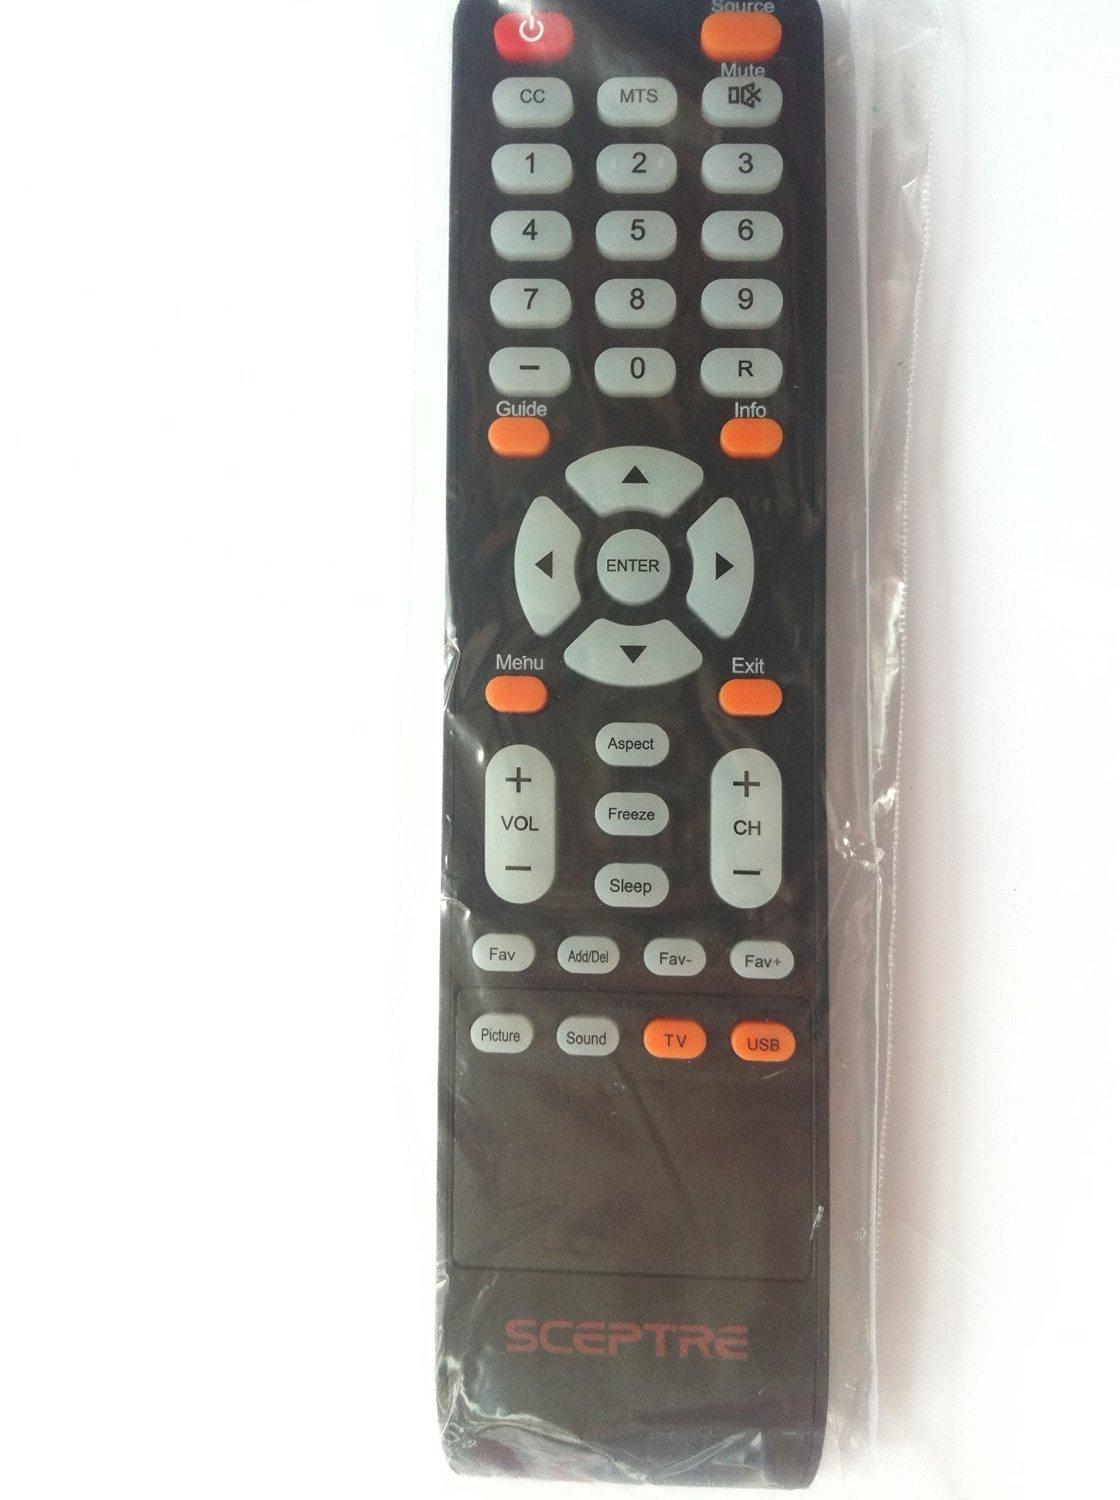 Brand New SCEPTRE LCD LED TV REMOTE for SCEPTRE X425BV-FHD3 X328BV-FHD X325BV-FHDU X325BV-FHD E195BD-SHD E165BD-HD E165BD-HD E240_FHD SCEPTRE E Series LED HDTV E243 E243BD-FHD E245BD-FHD E245BV-FHD E240 E240BC-FHD E195BV-SHD E245BV-FHD E243PV-FHD E325BV-HDC E325BD-HD X325BV-FHD LCD LED TV---Sold by